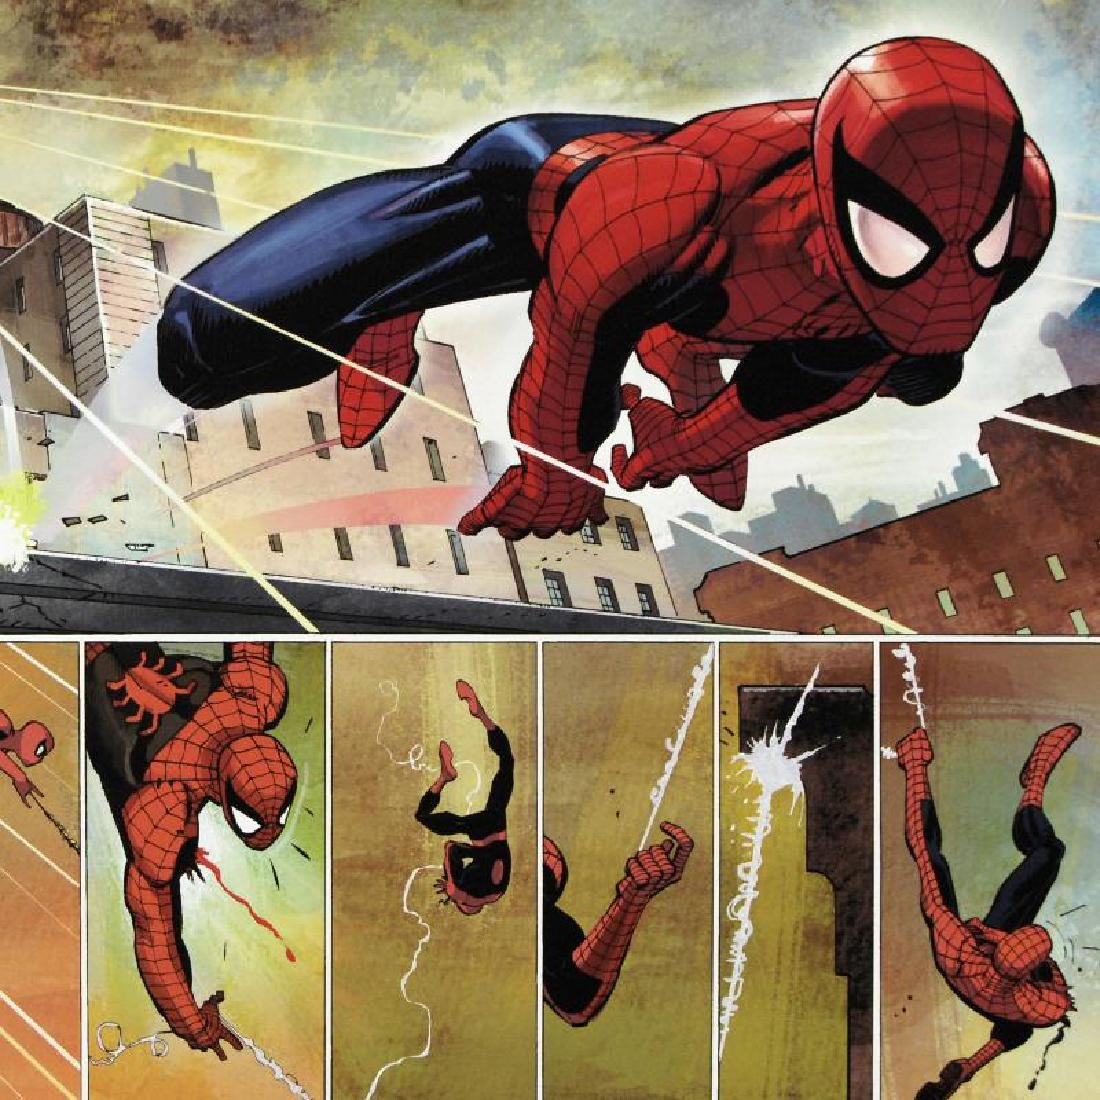 The Amazing Spider Man #584 by Marvel Comics - 2